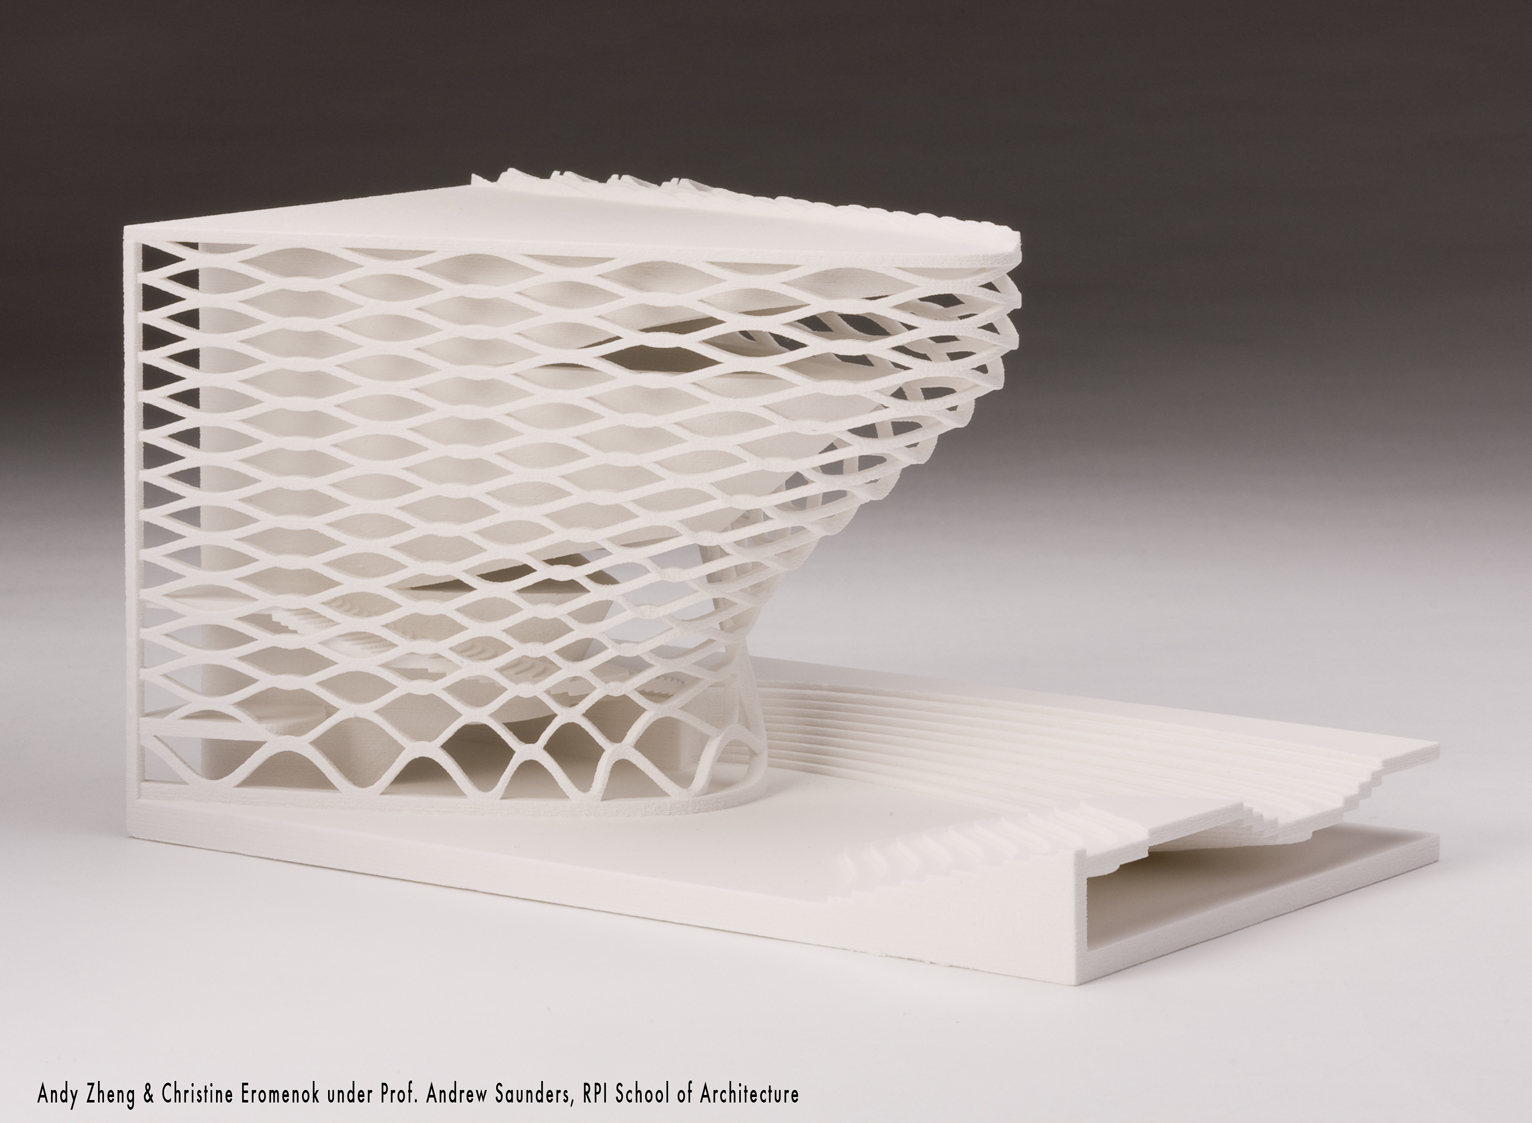 3D Printing in AEC: January 2011